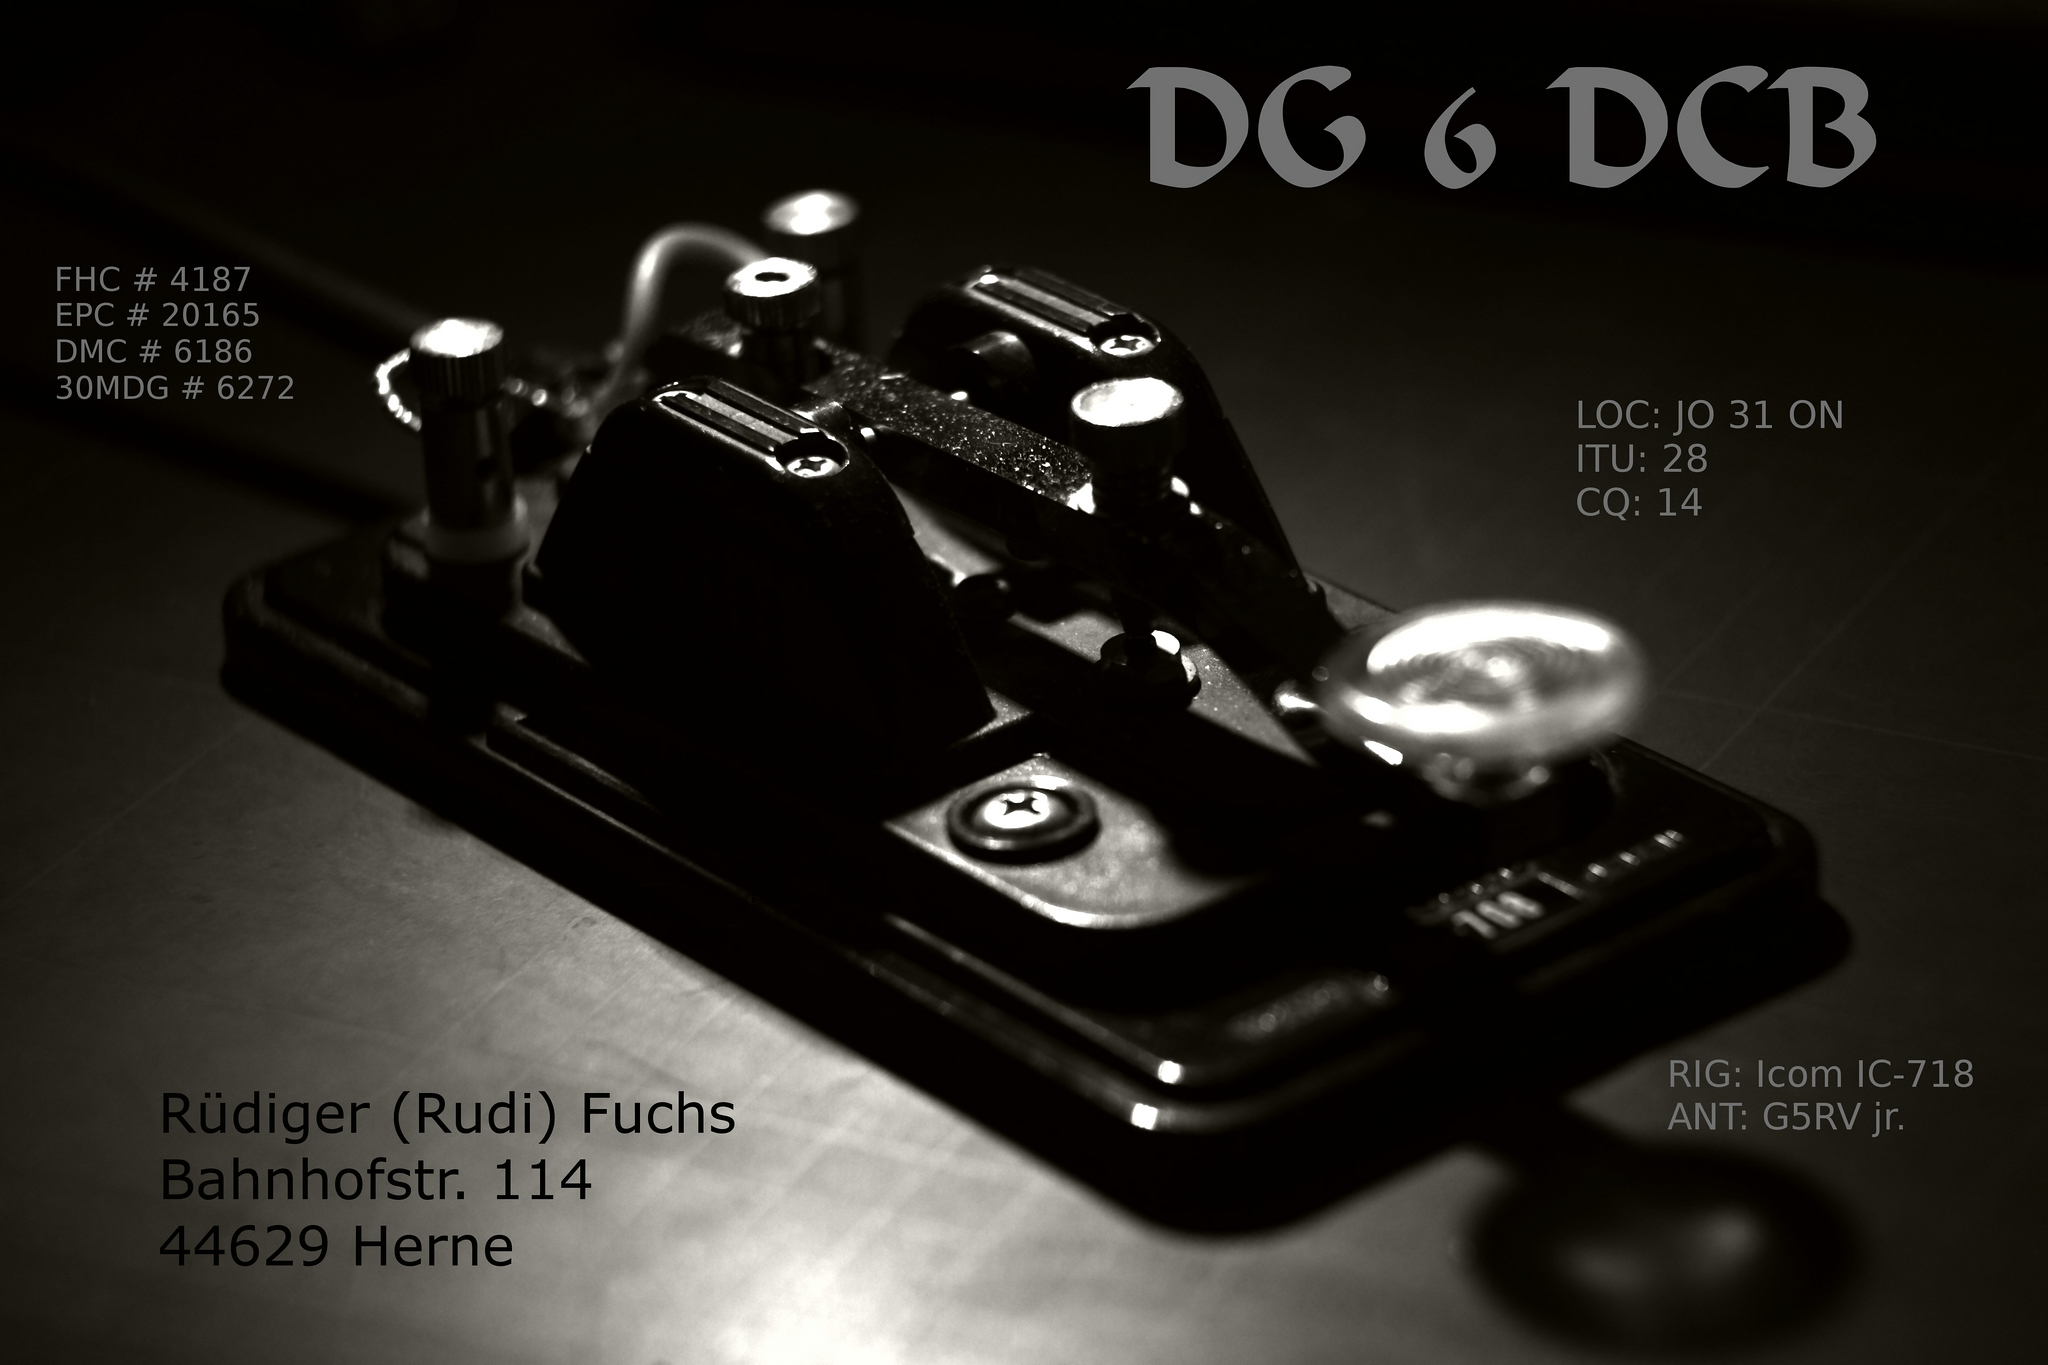 QSL image for DG6DCB